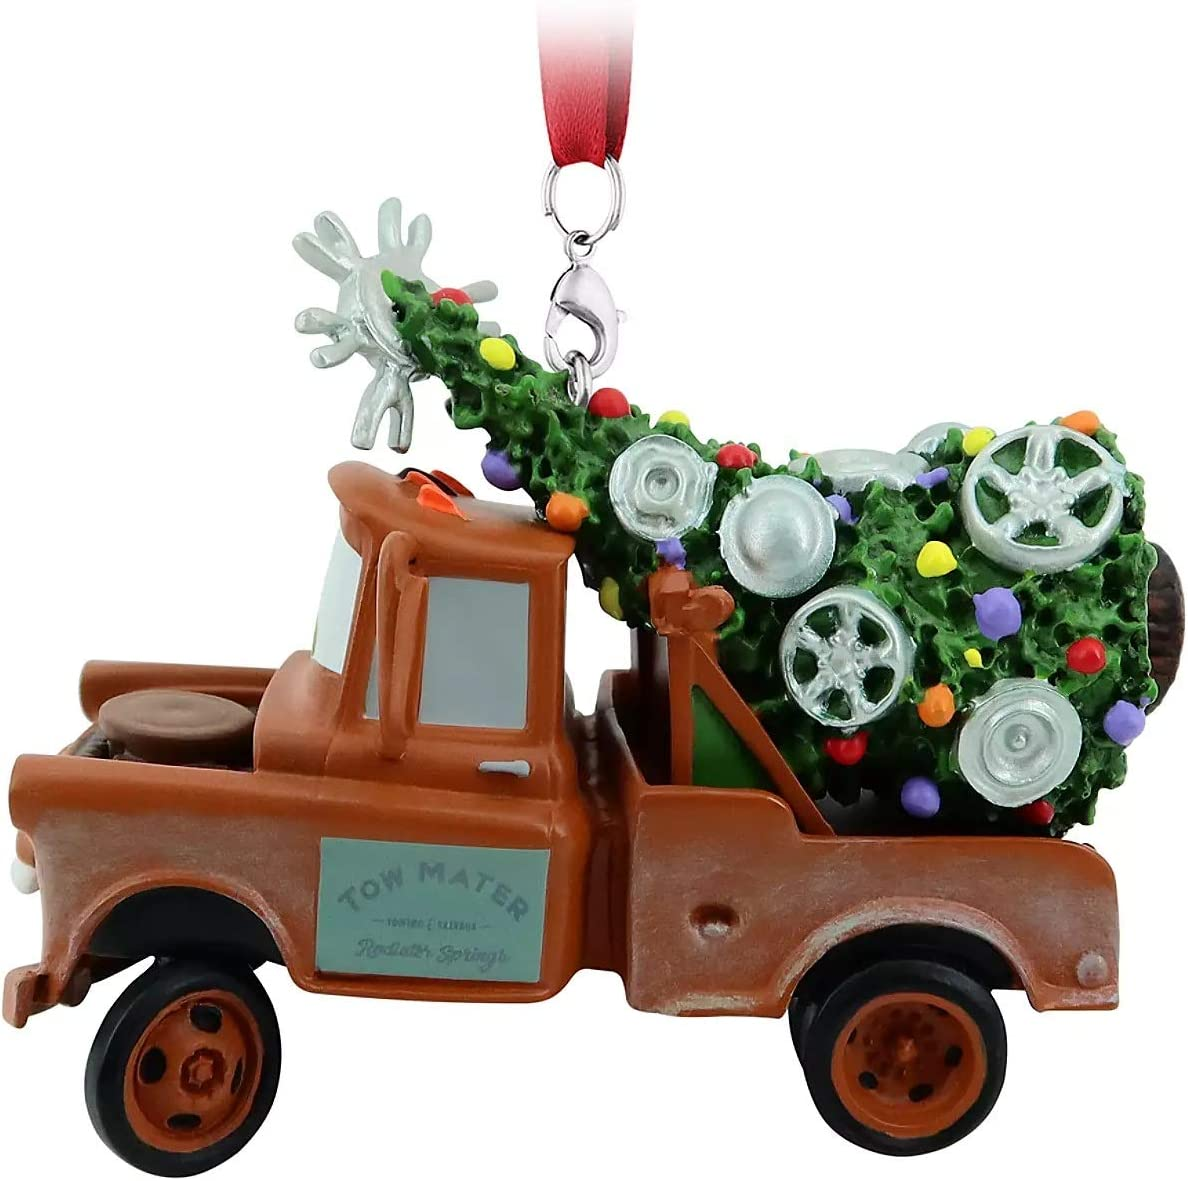 Mater Topics on TV Christmas Ornament with Tree Fashion Back on